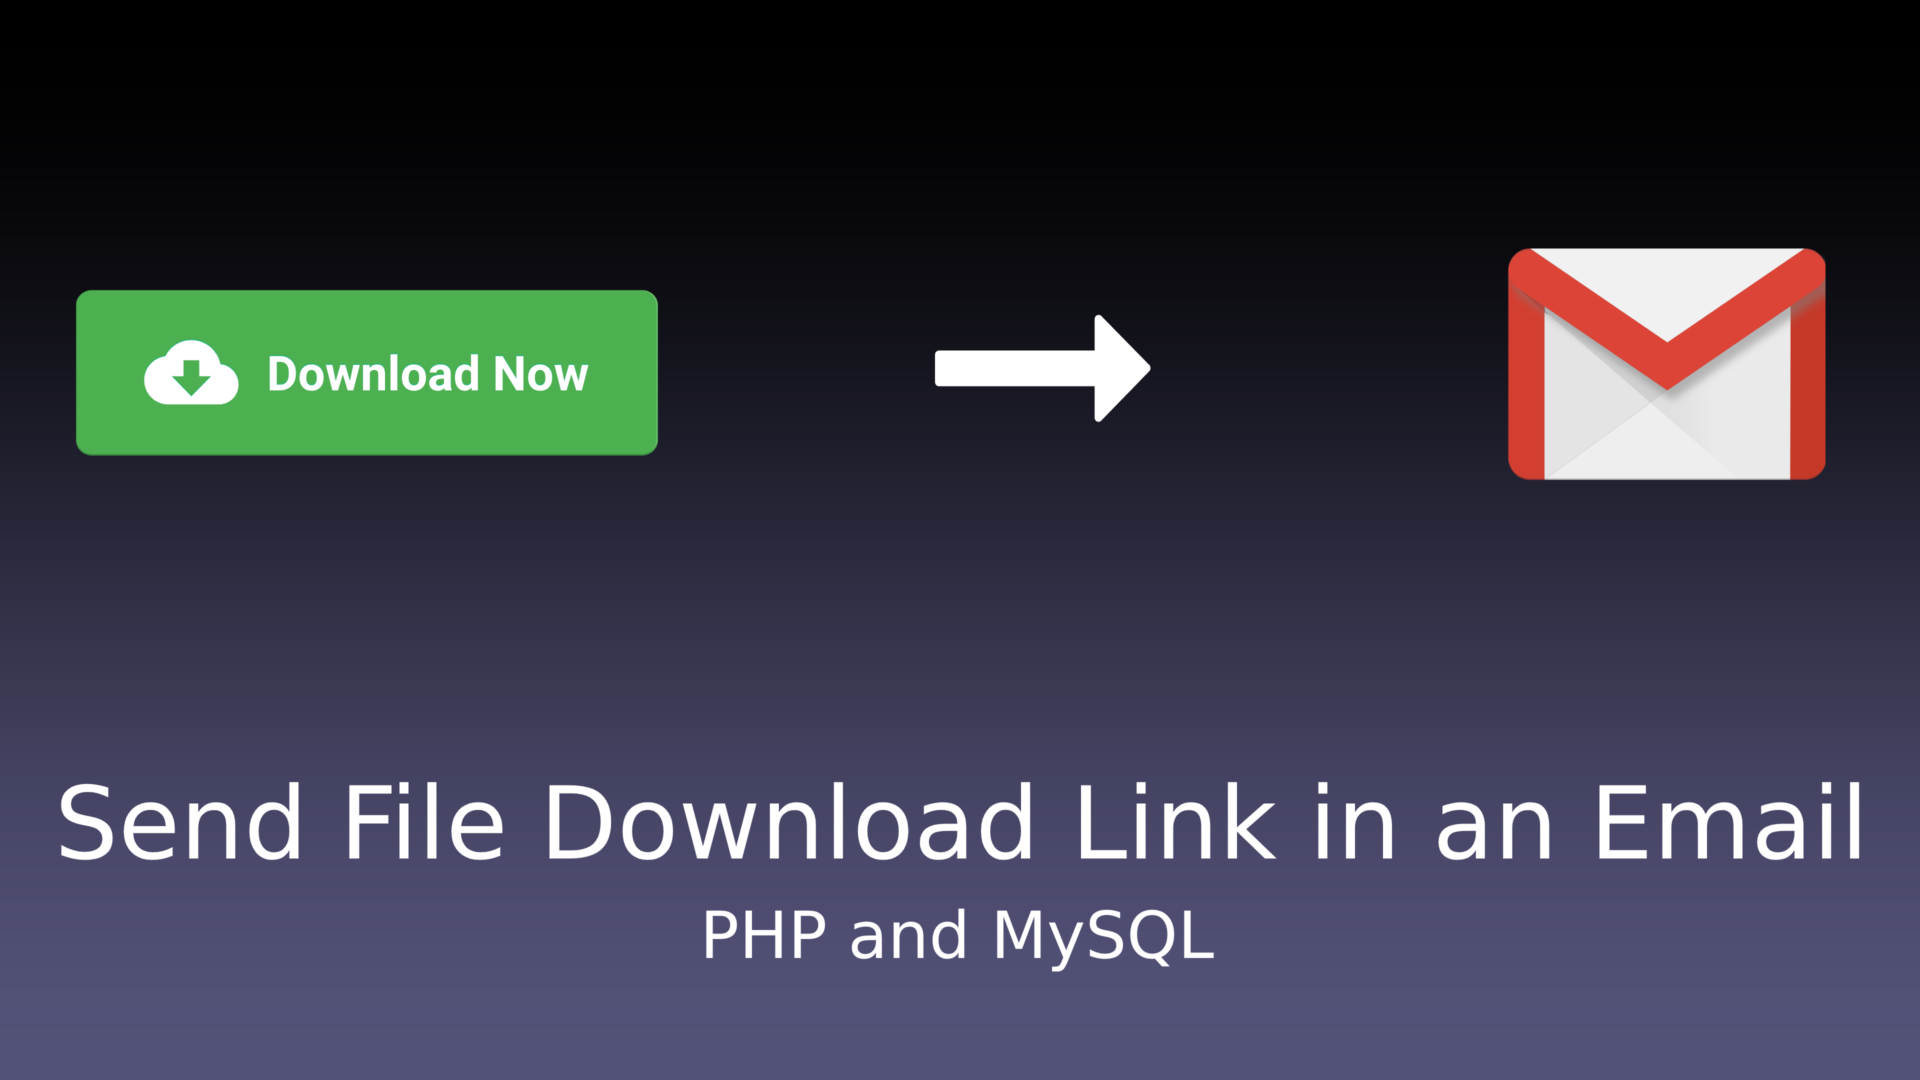 Send File Download Link in an Email - PHP and MySQL